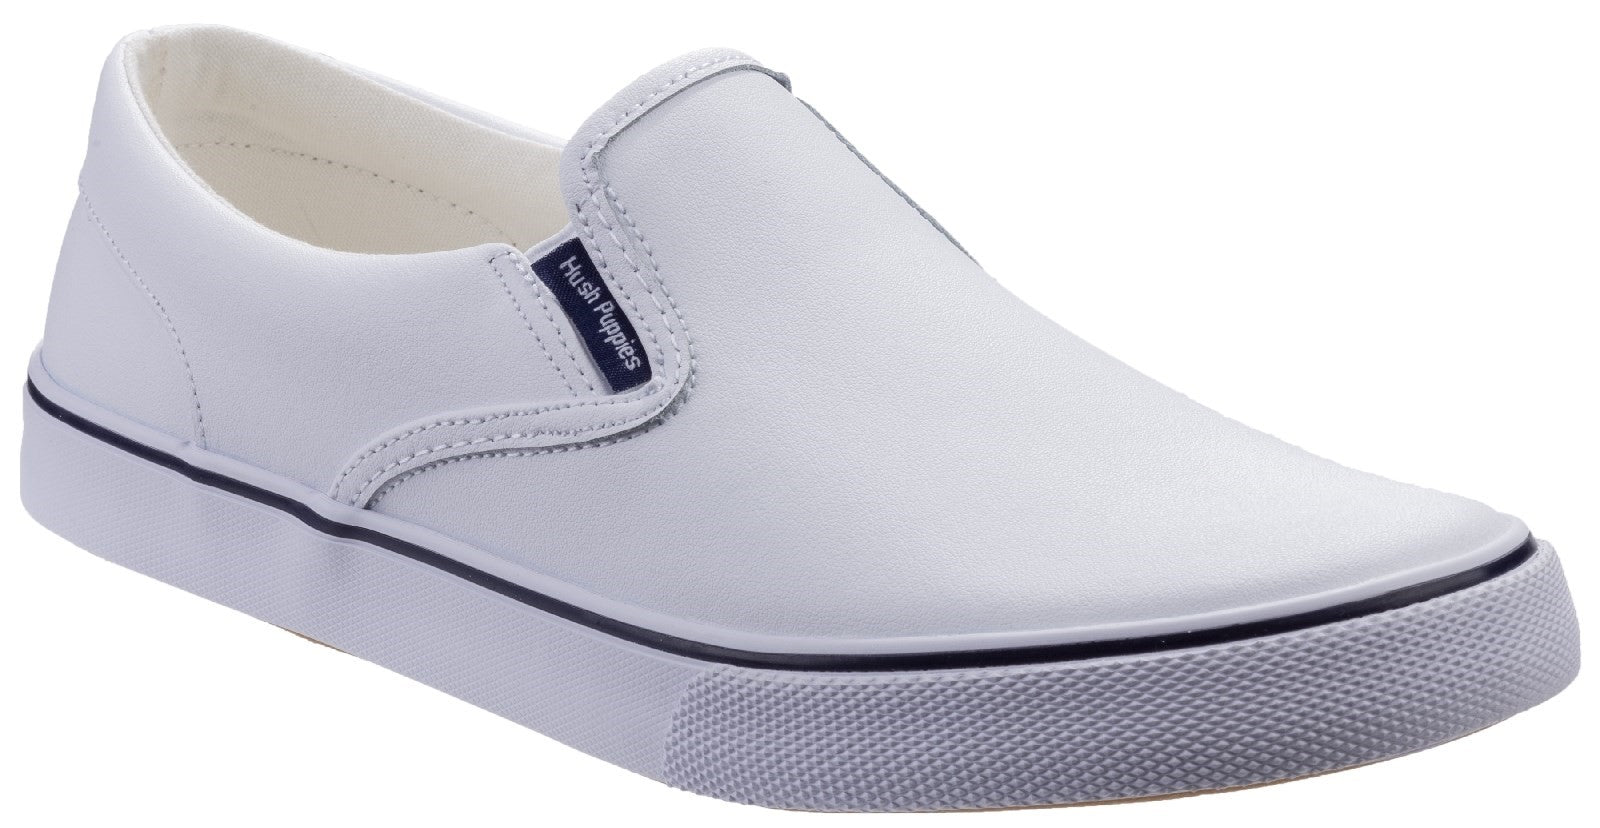 Hush Puppies Women's Byanca Slip On Shoe Various Colours 29716